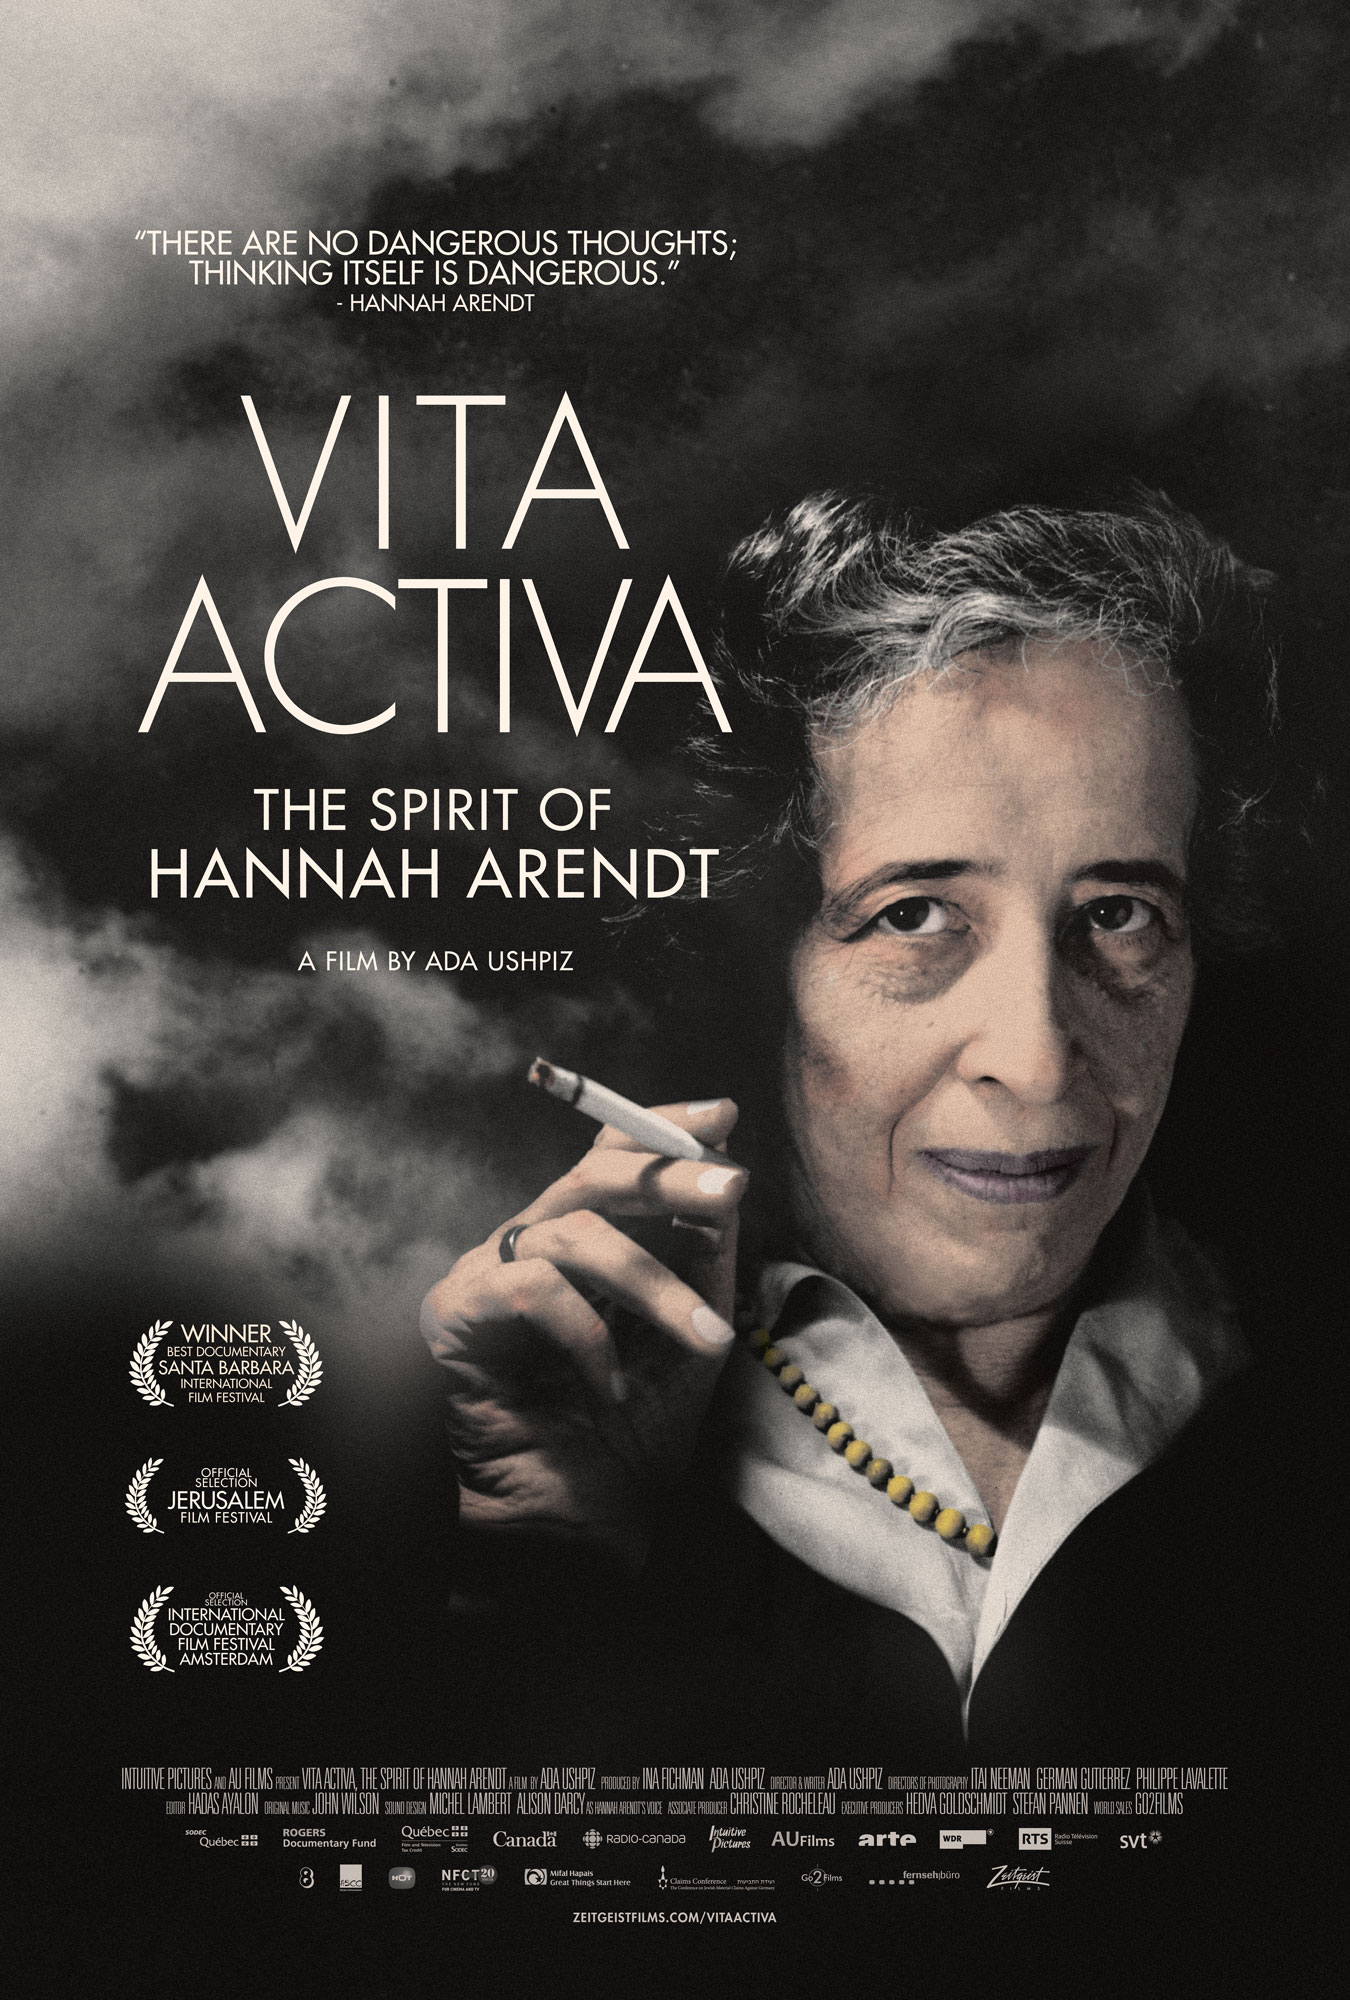 Vita Activa - The Spirit of Hannah Arendt [DVD]